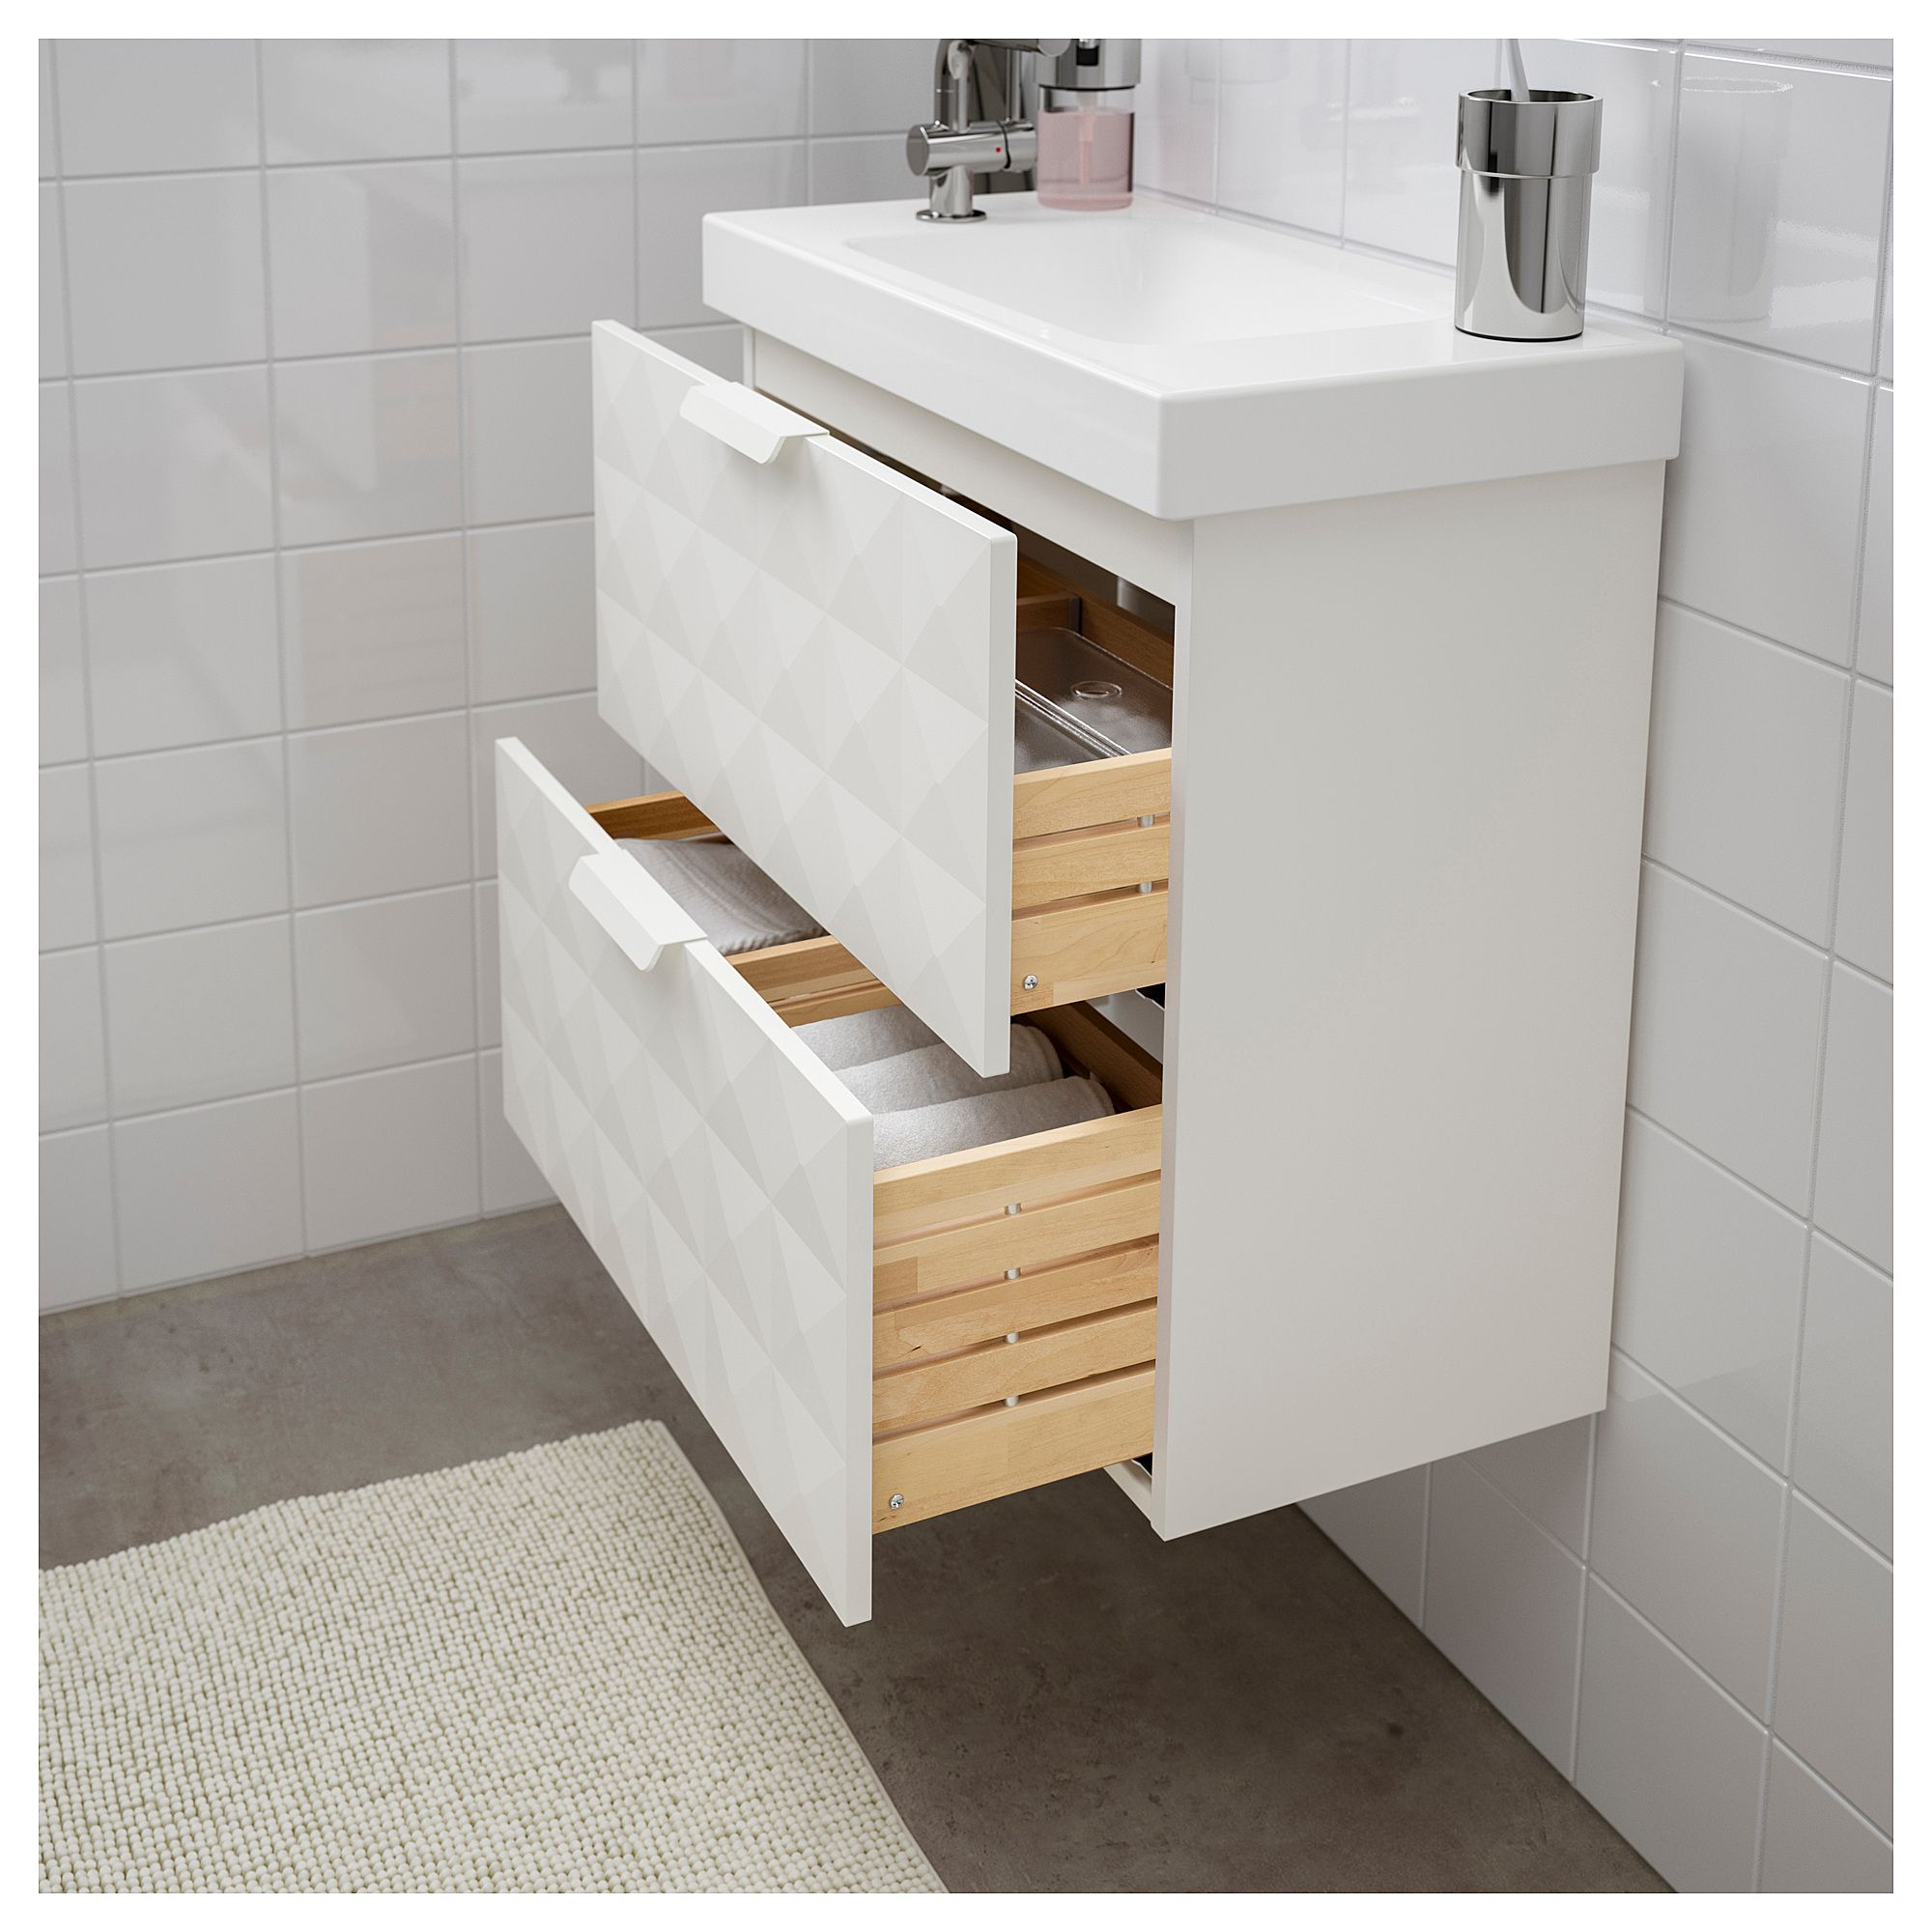 Furniture And Home Furnishings Meuble Lavabo Lavabo Ikea Et